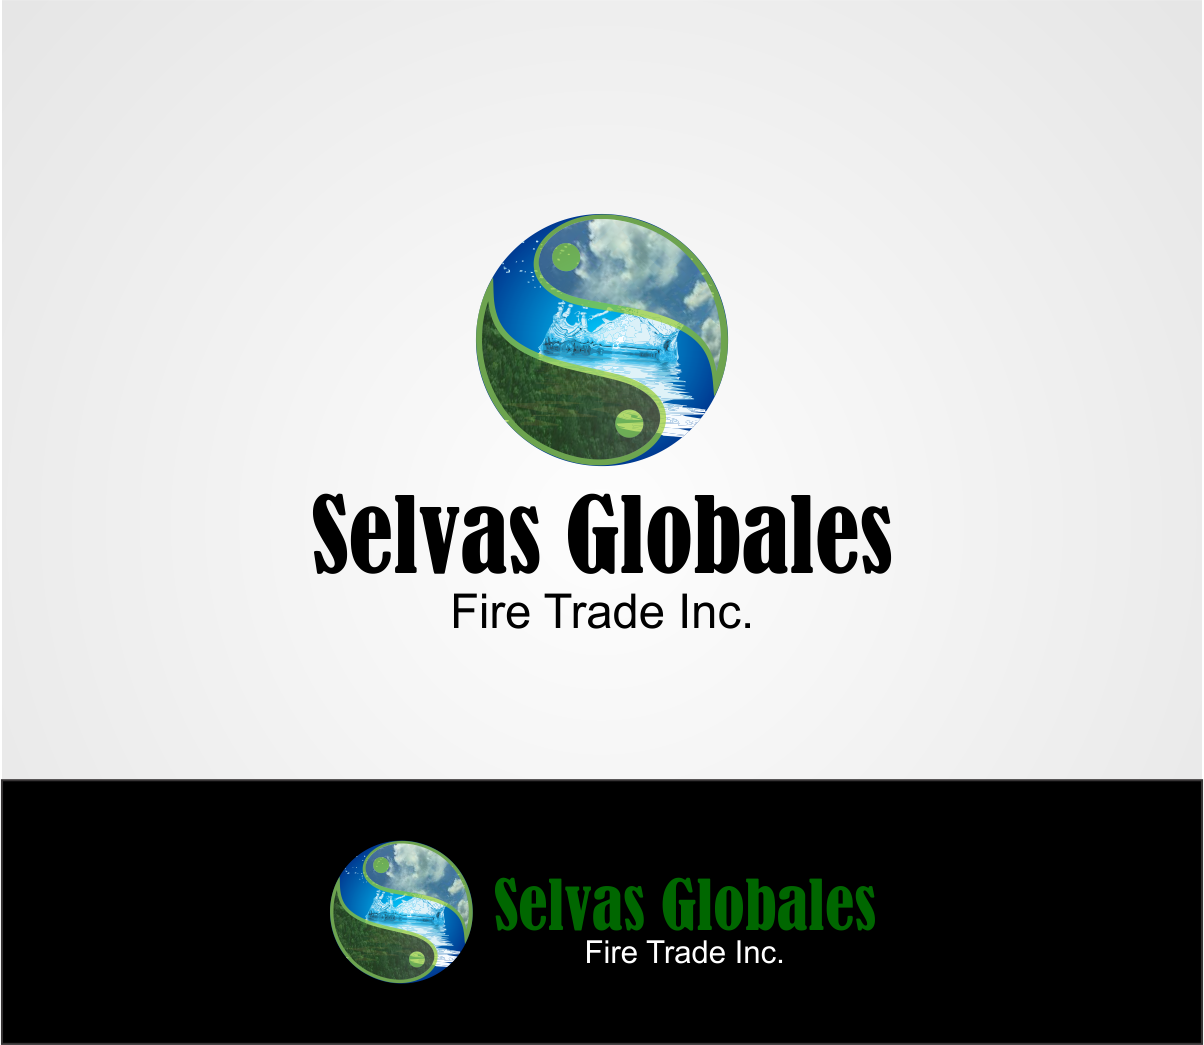 Logo Design by Agus Martoyo - Entry No. 131 in the Logo Design Contest Captivating Logo Design for Selvas Globales Fair Trade Inc..